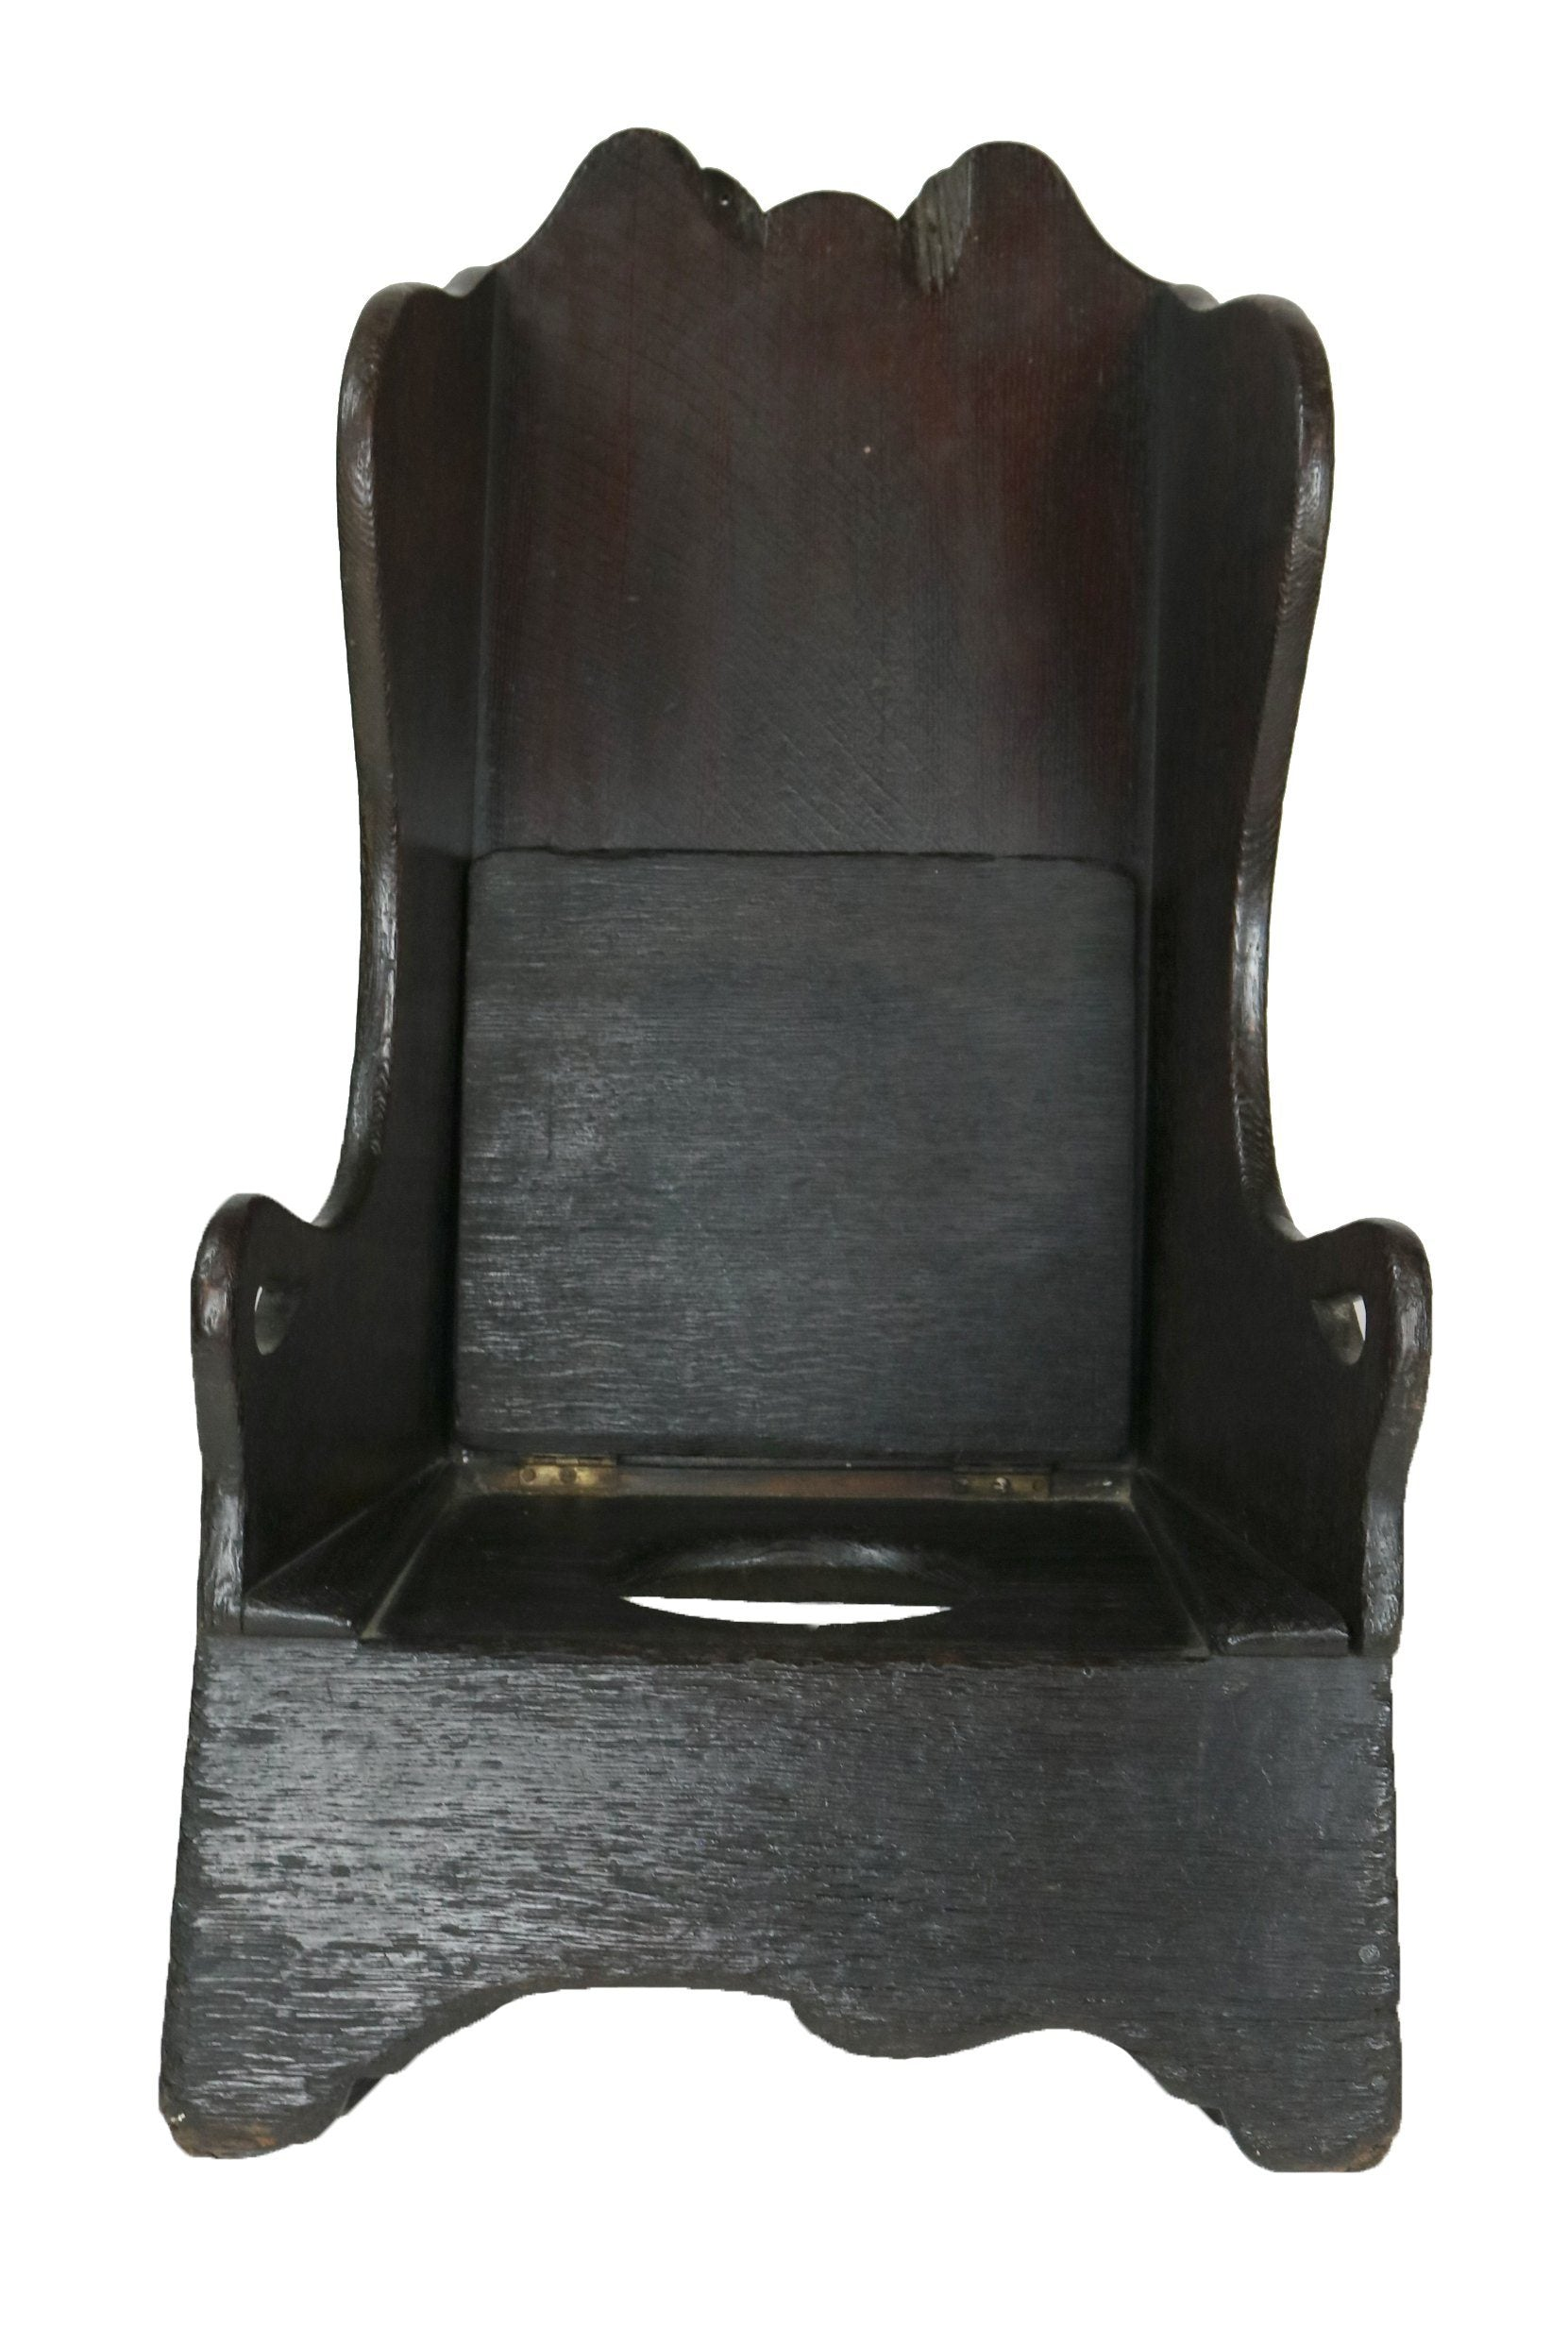 18th Century Child's Rocking Chair - A Modern Grand Tour